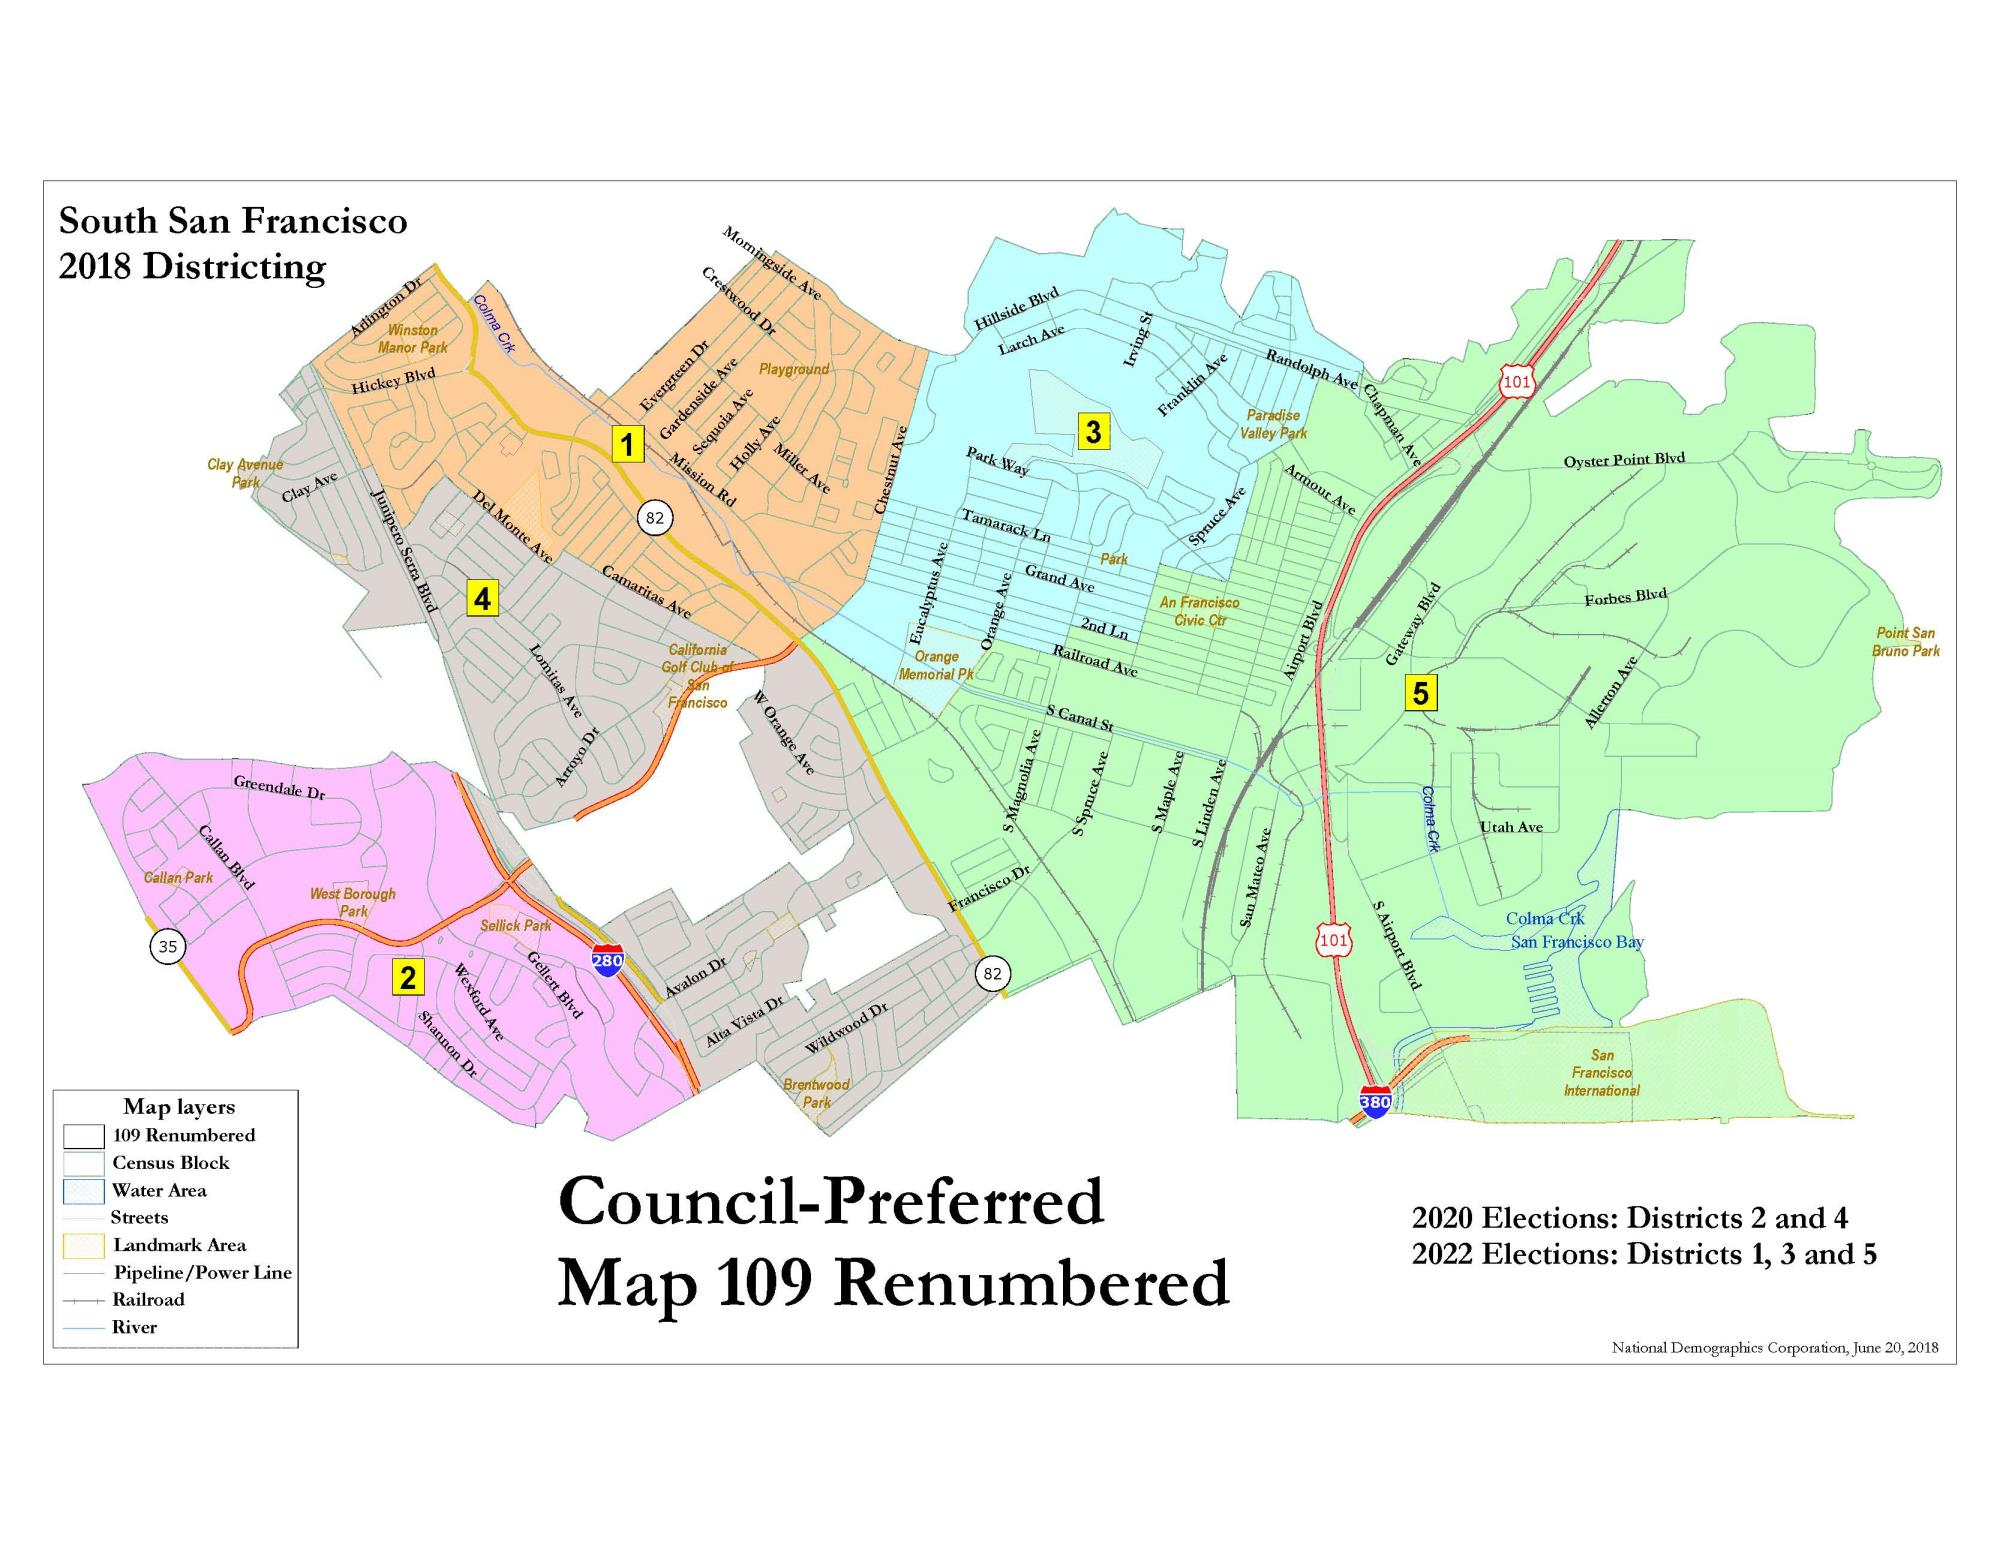 District Elections | City of South San Francisco on demographic map of memphis, demographic map texas, demographic map of united states, demographic map of atlanta, demographic map of florida, demographic map dc, demographic map of the us, demographic map of milwaukee, demographic map of santa fe, demographic map usa, demographic map of phoenix, demographic map of staten island, demographic map of mississippi, demographic map of jerusalem, demographic map of new york city, demographic map of west virginia, demographic map of beverly hills, demographic map of paris, demographic map of tokyo, demographic map of south carolina,